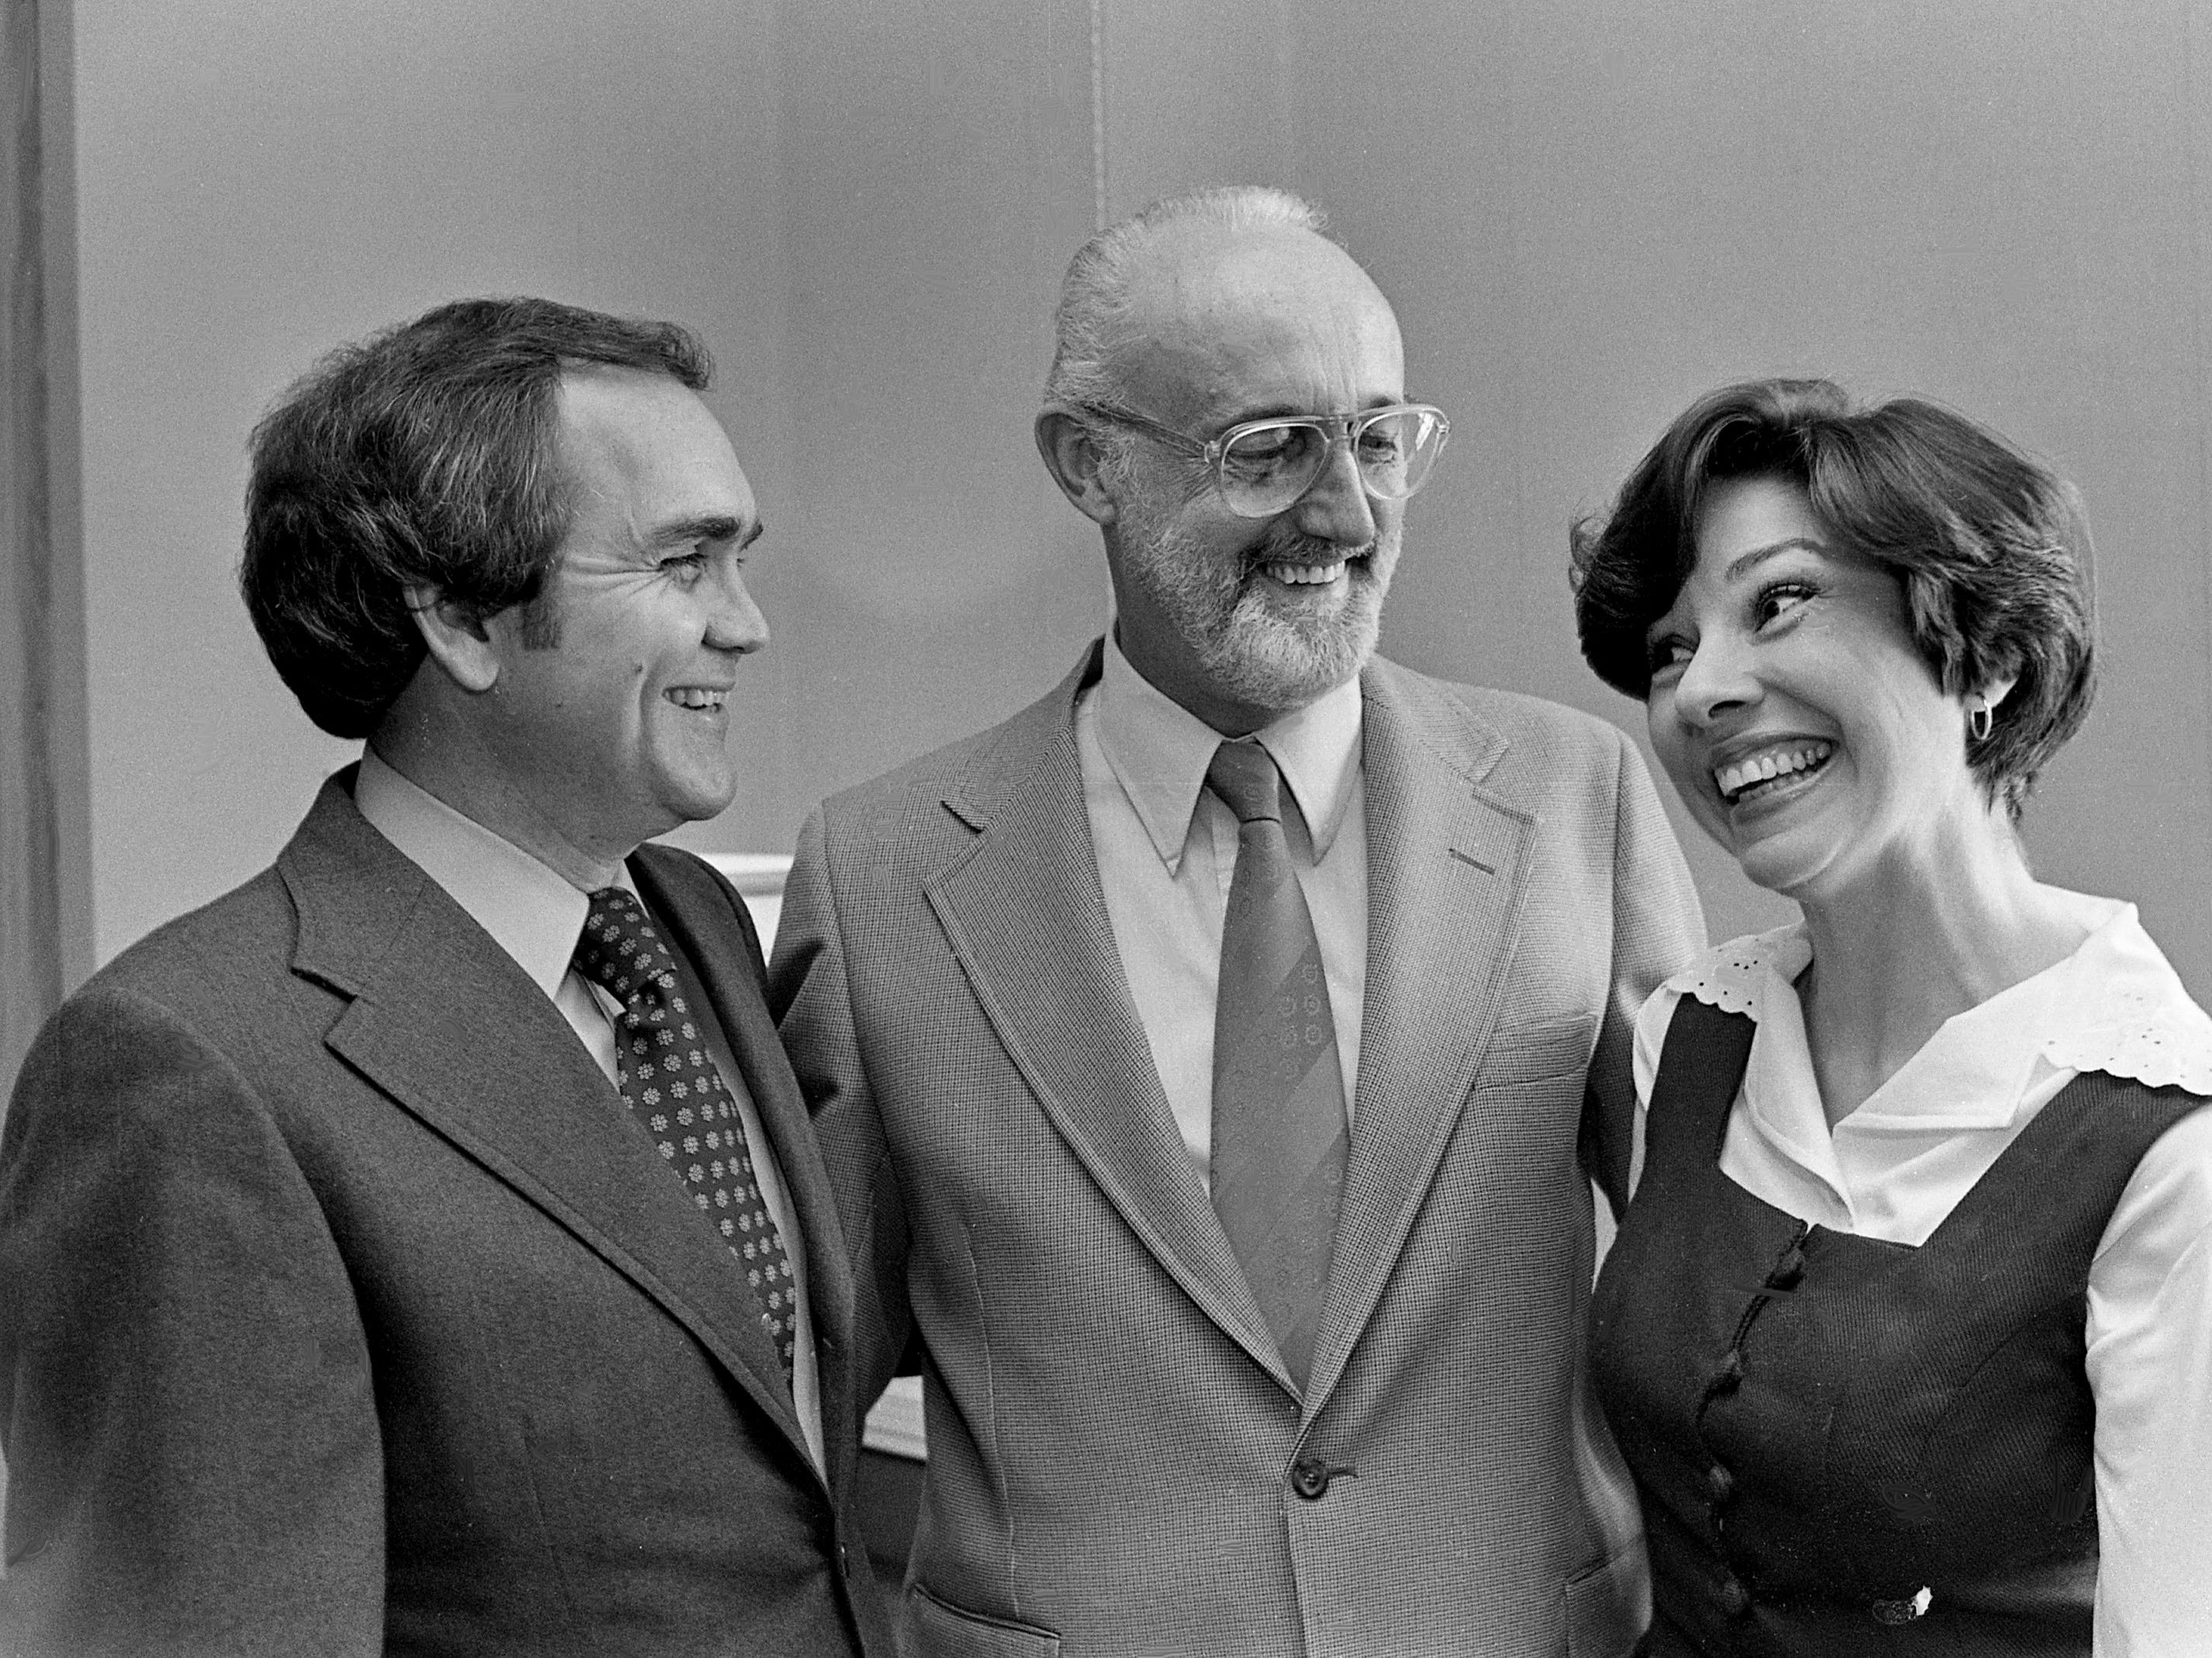 Reg Dunlap, left, president of Show Biz, Inc., producer of several nationally-syndicated television shows, discusses the company's new music publishing wing with Ed Penney, who will head their new autonomous company, and his assistant Pat Strawbridge on Jan. 24, 1979. Included in the new wing will be two BMI-affiliated companies, Show Biz Music and Song Biz, and two ASCAP-affiliated companies, Lucky Penny and Monster Music.